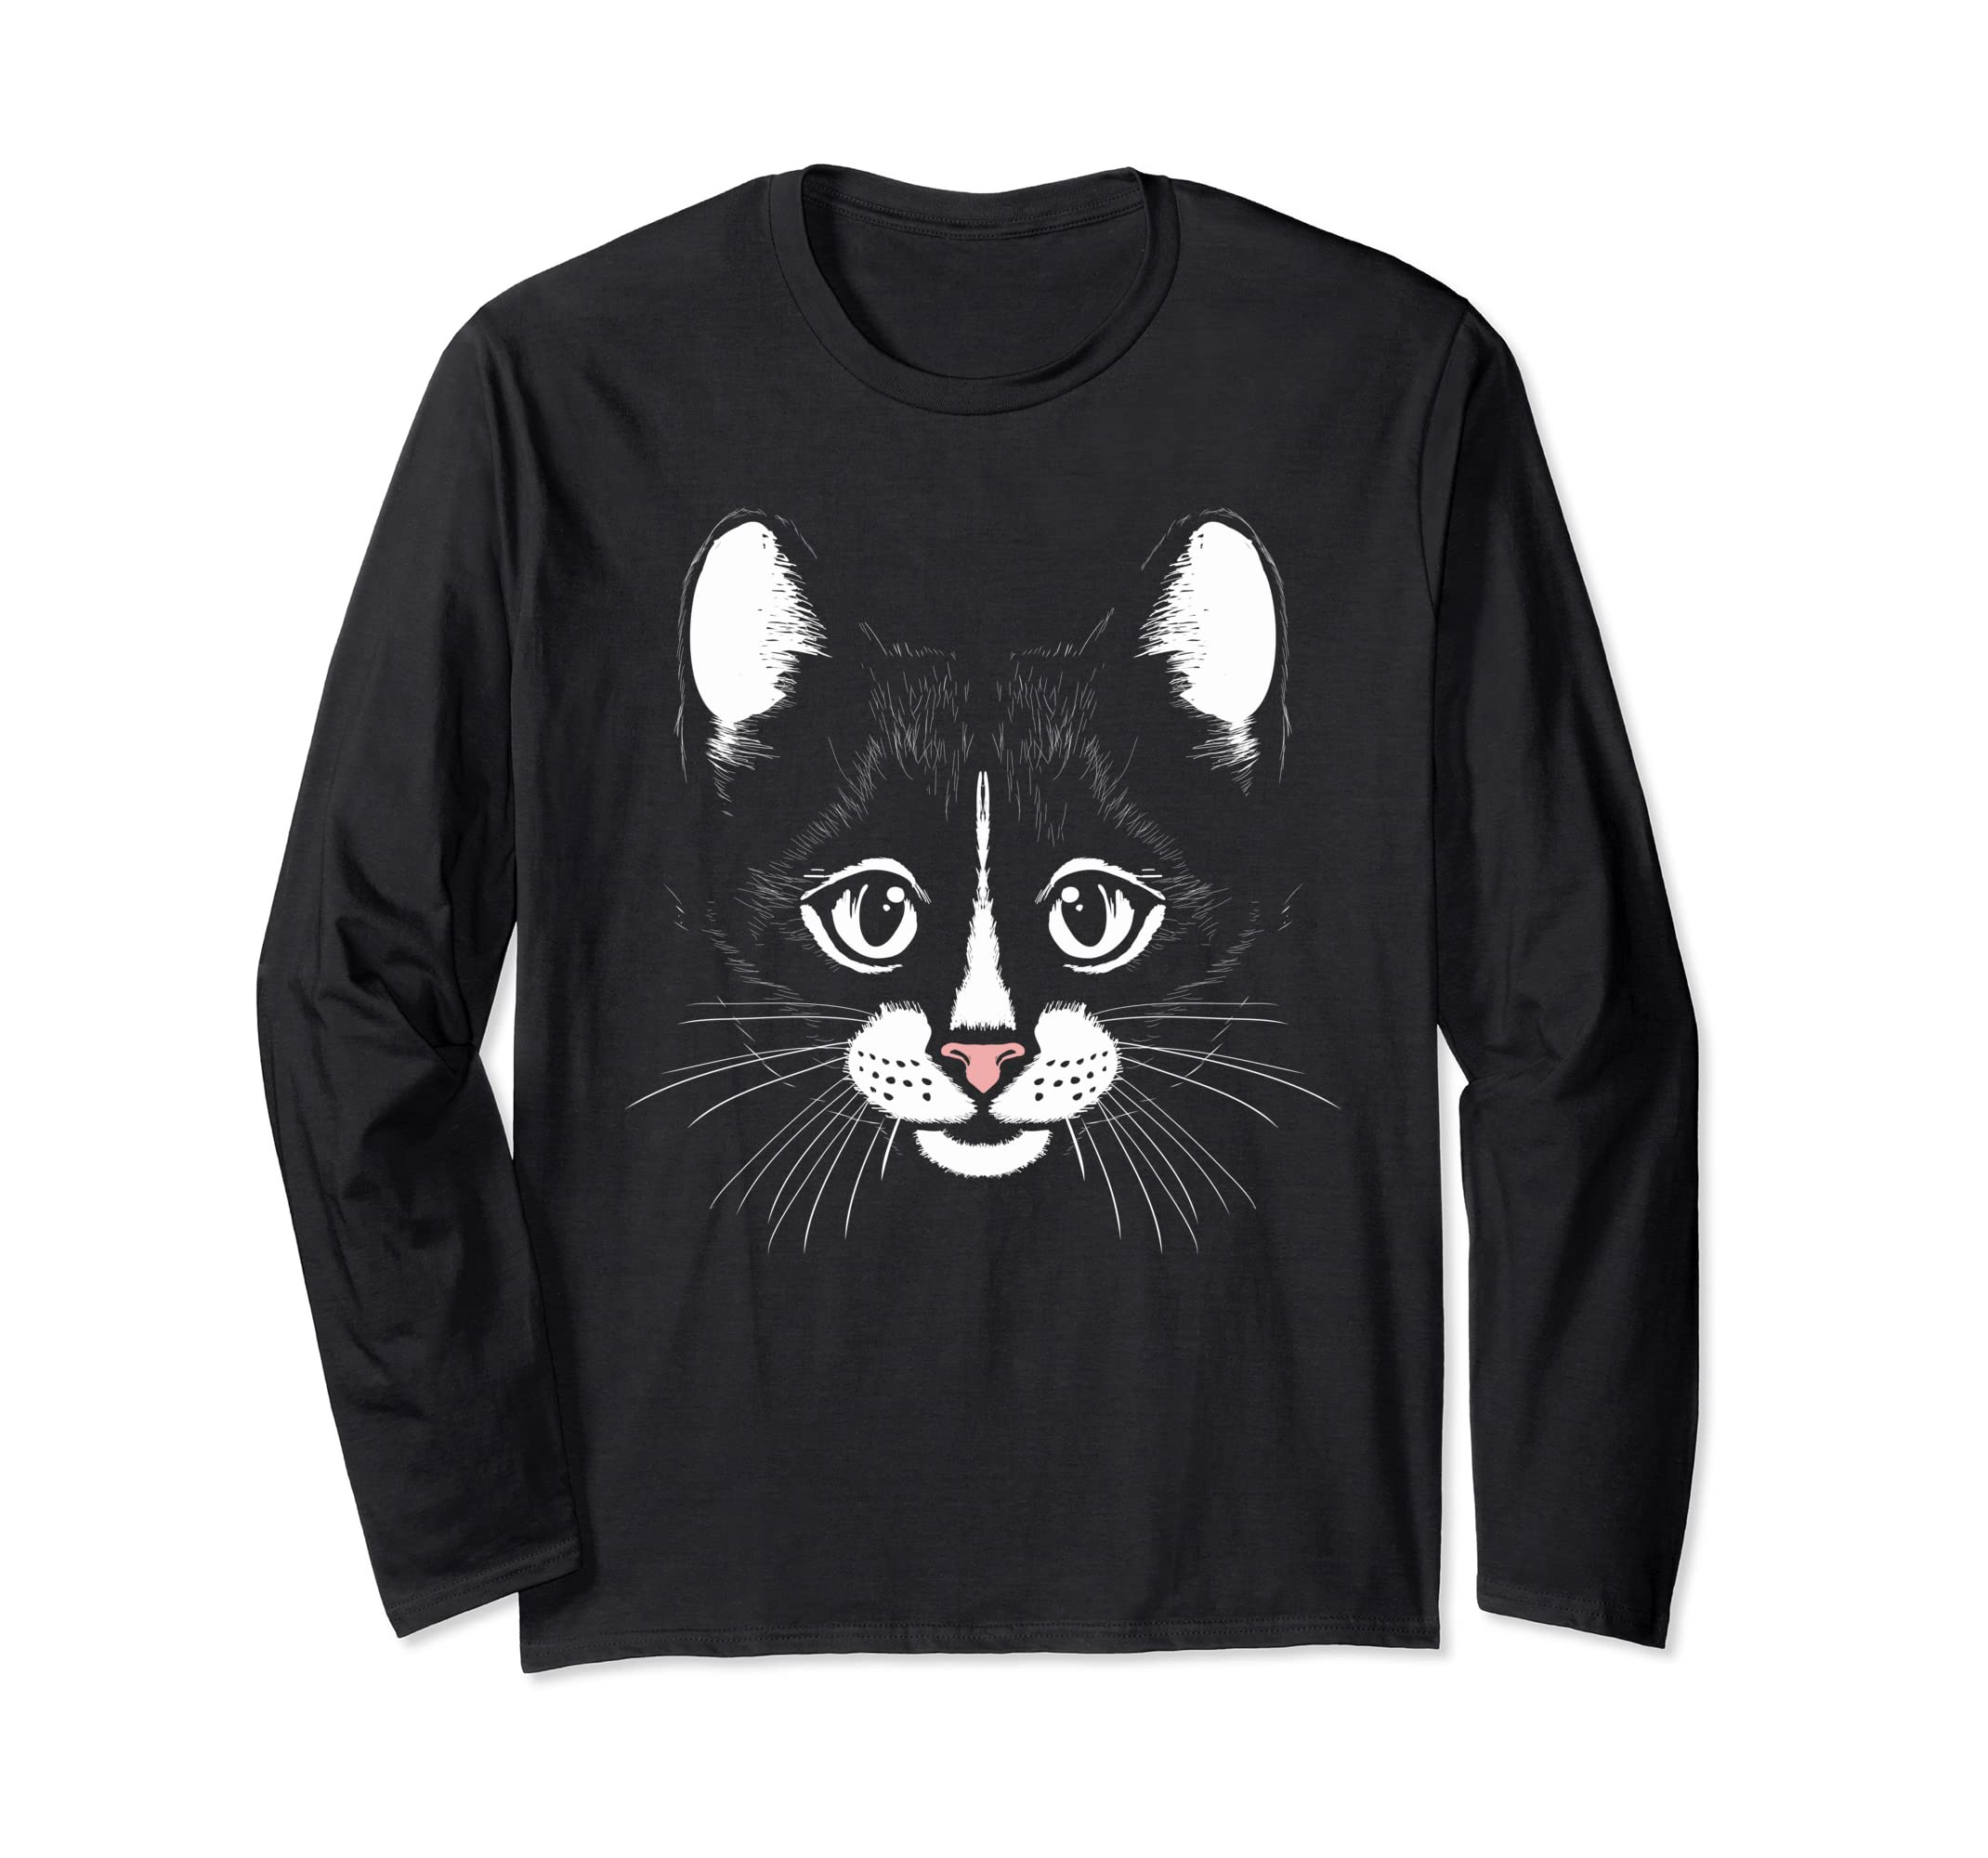 5f3fc8d5 Amazon.com: Cool Cat Face Funny Graphic Pet Lover Long Sleeve T-Shirt:  Clothing